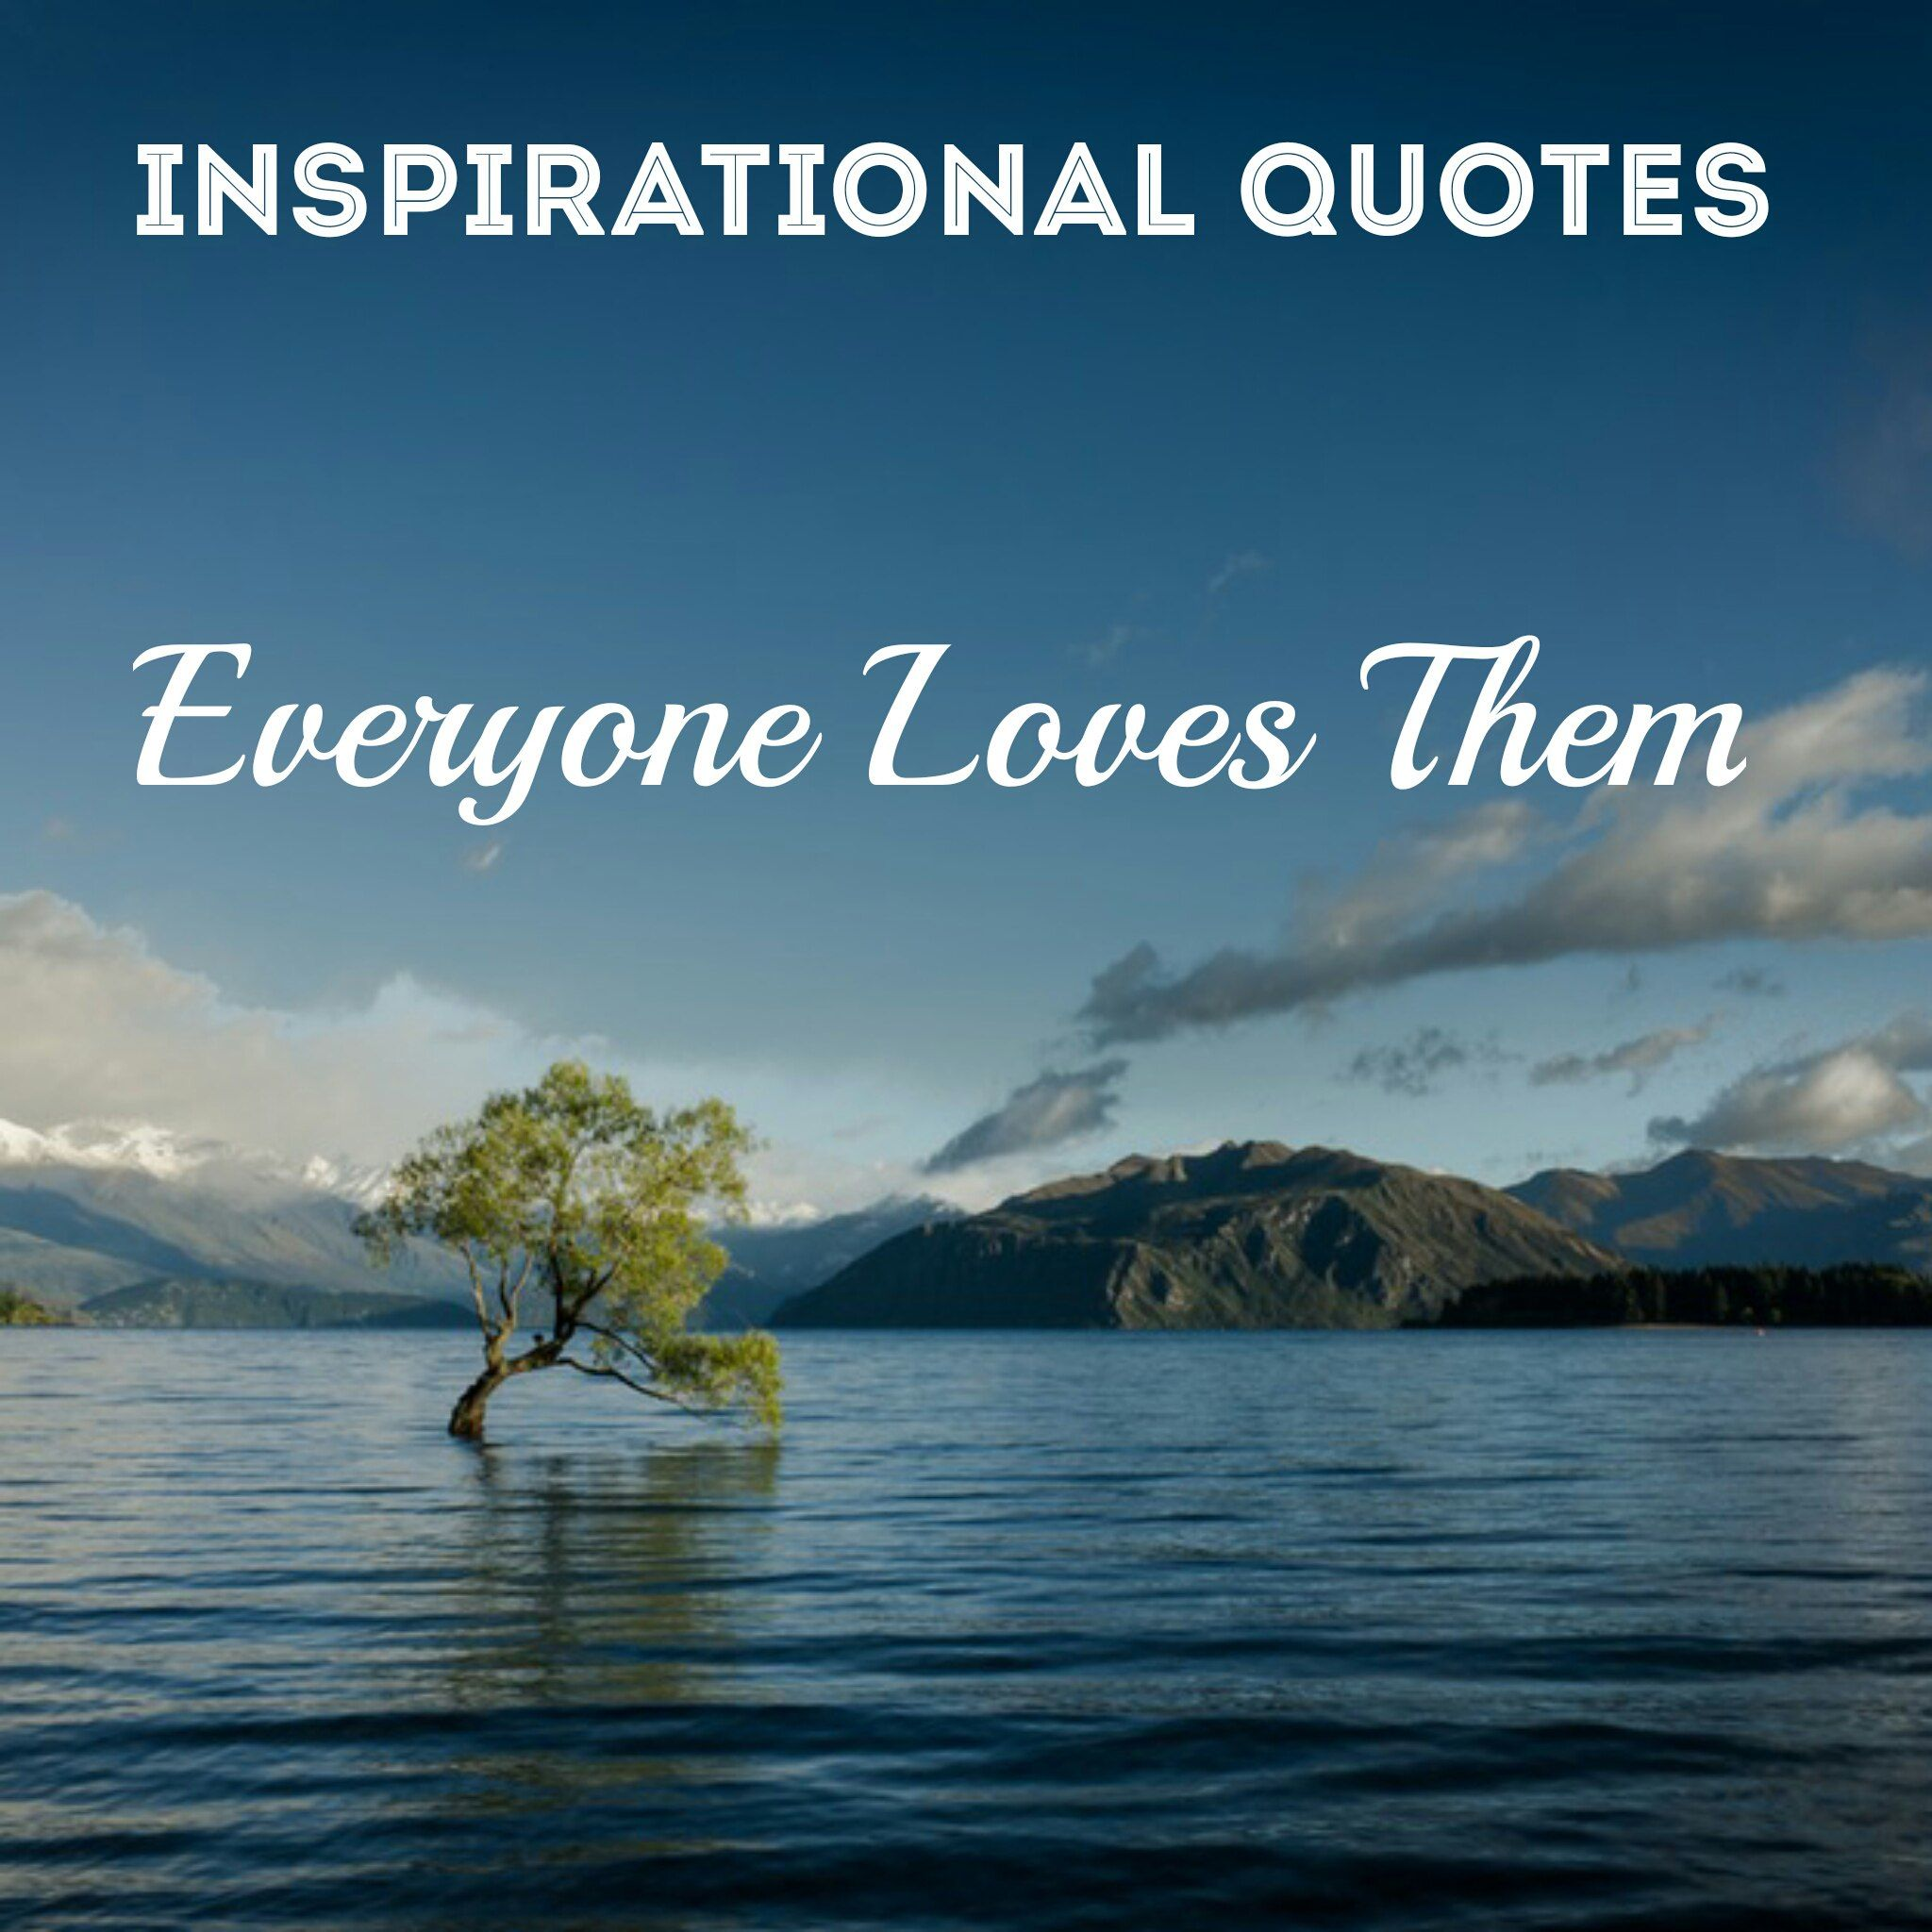 Inspirational Quotations 154 Best Inspirational Quotes & Sayings Of All Time